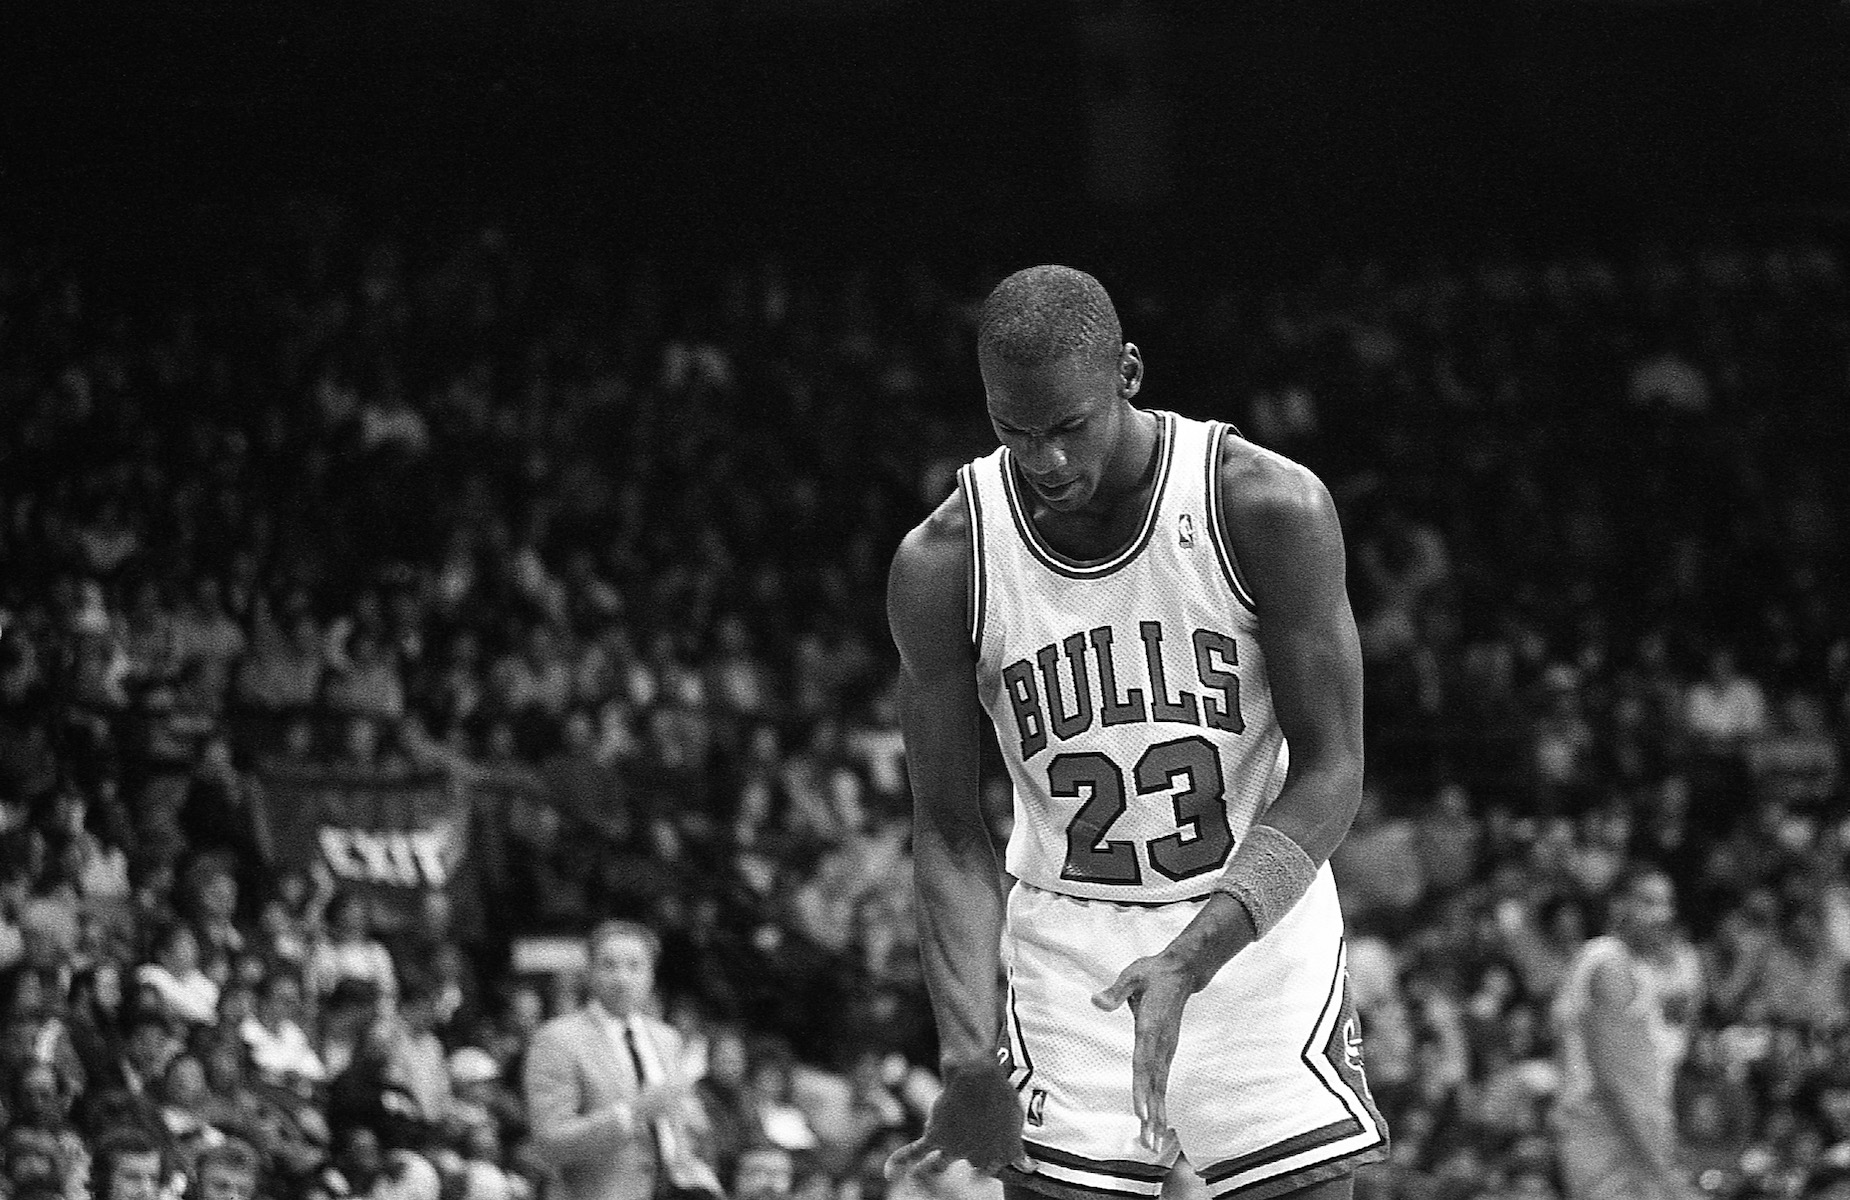 Michael Jordan at the free throw line for the Chicago Bulls.